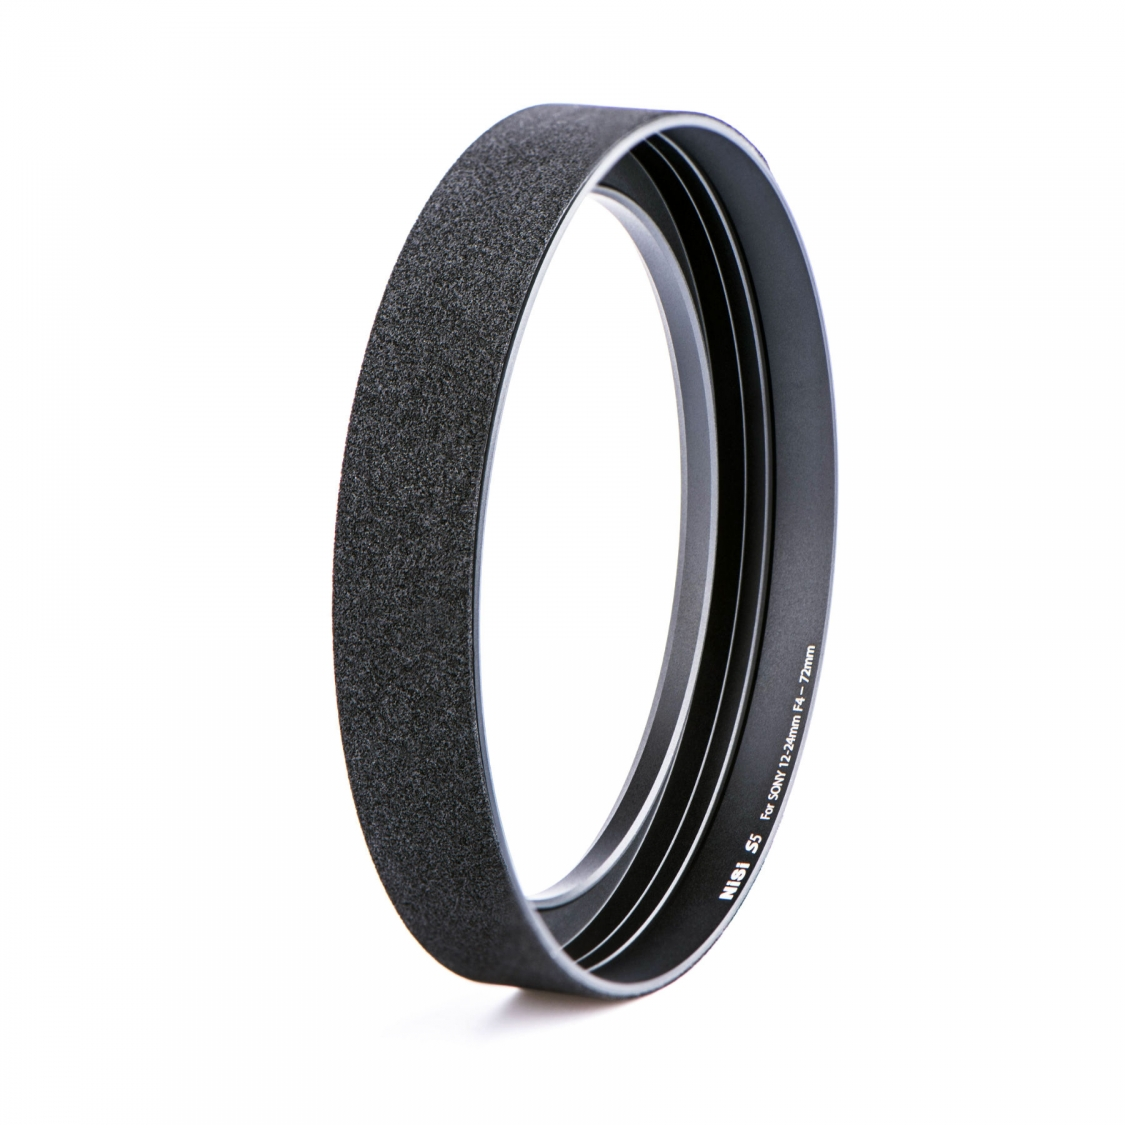 NiSi 82mm Filter Adapter Ring for S5 (Sigma 14-24mm f/2.8 DG Art Series - Canon and Nikon Mount)